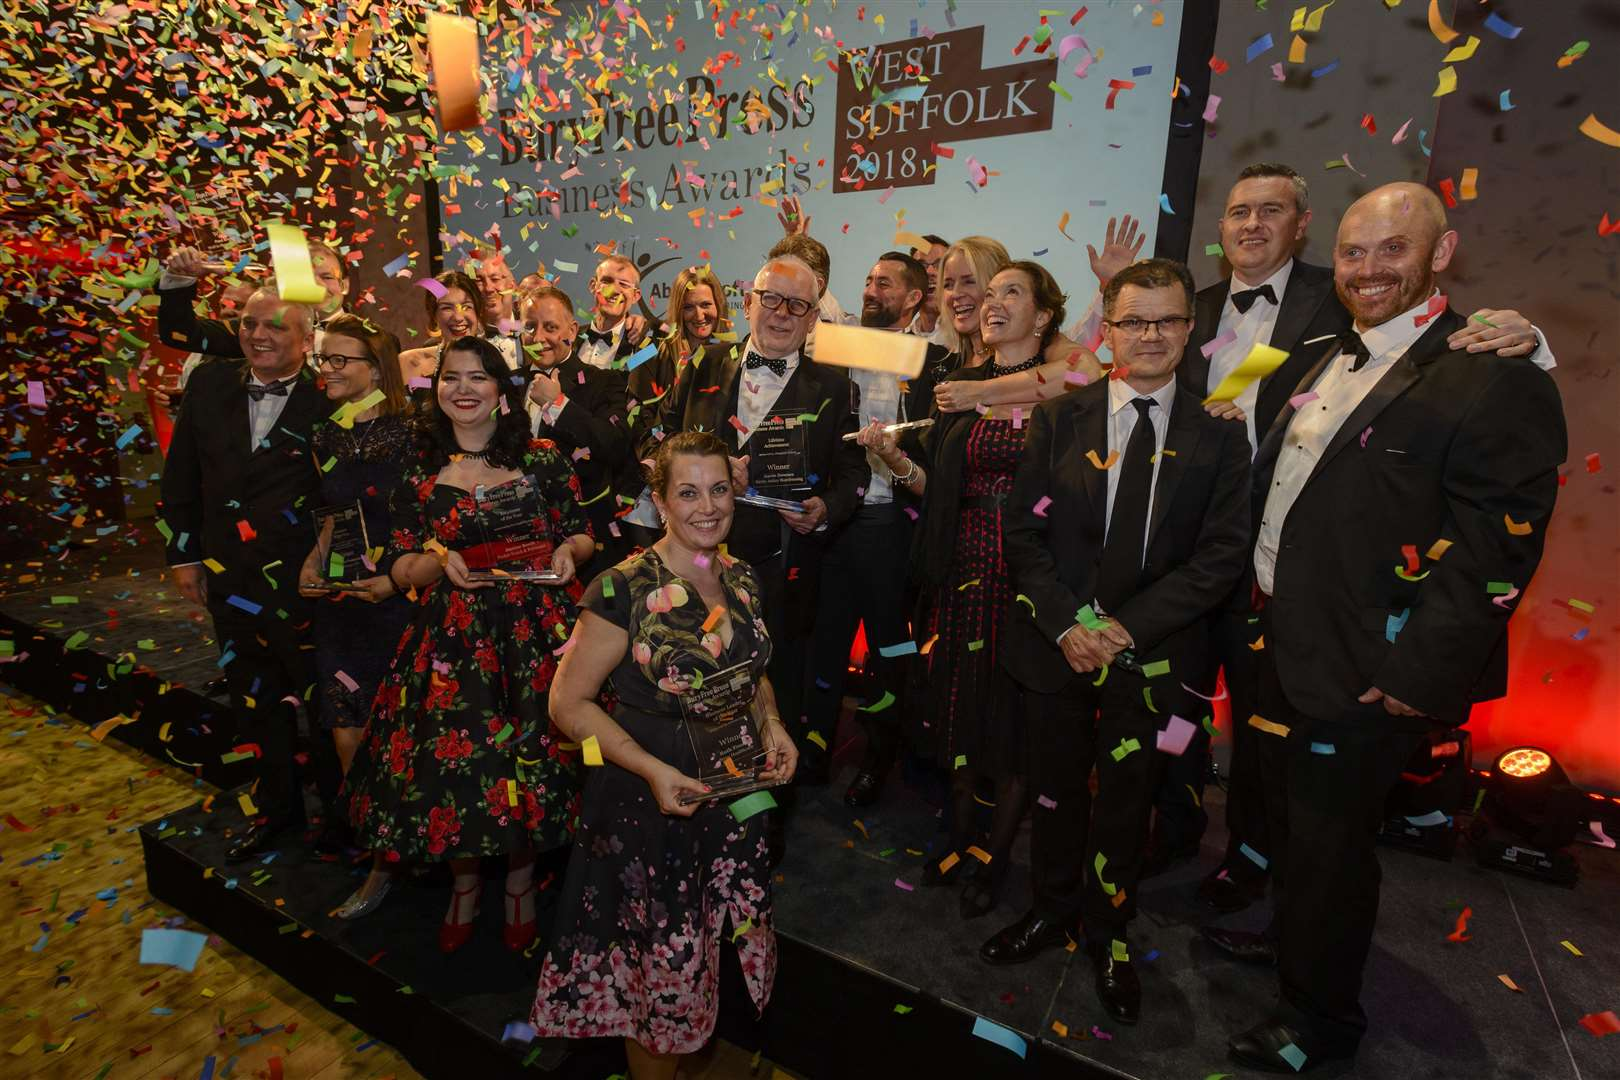 Bury St Edmunds, Suffolk, UK, 12 October 2018Winners of the Bury Free Press Business Awards 2018 on the stage at the end of the awards evening.Picture: Mark Bullimore Photography (4770070)